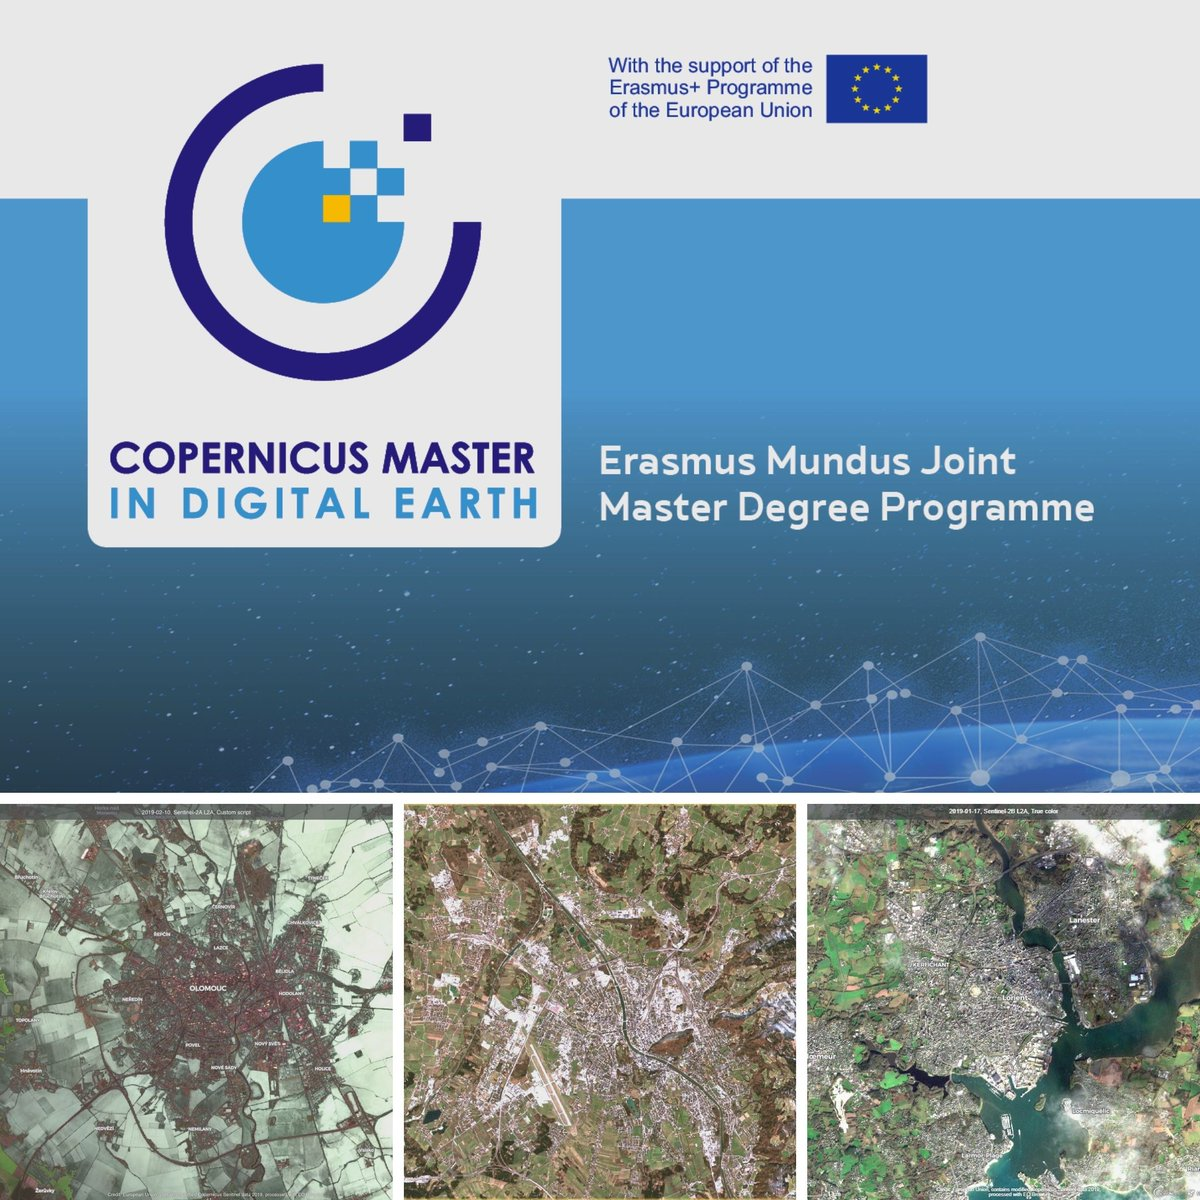 #applynow and #study #EO * #GI in Salzburg, #GeoDataScience in Vannes or #GeoVisualization in Olomouc ><  #Sentinel #Copernicus #DigitalEarth #Erasmusplus #EMJMD  #GIScientist #MSc  #Geoinformatics  #RemoteSensing #GeoINT #EarthObservation